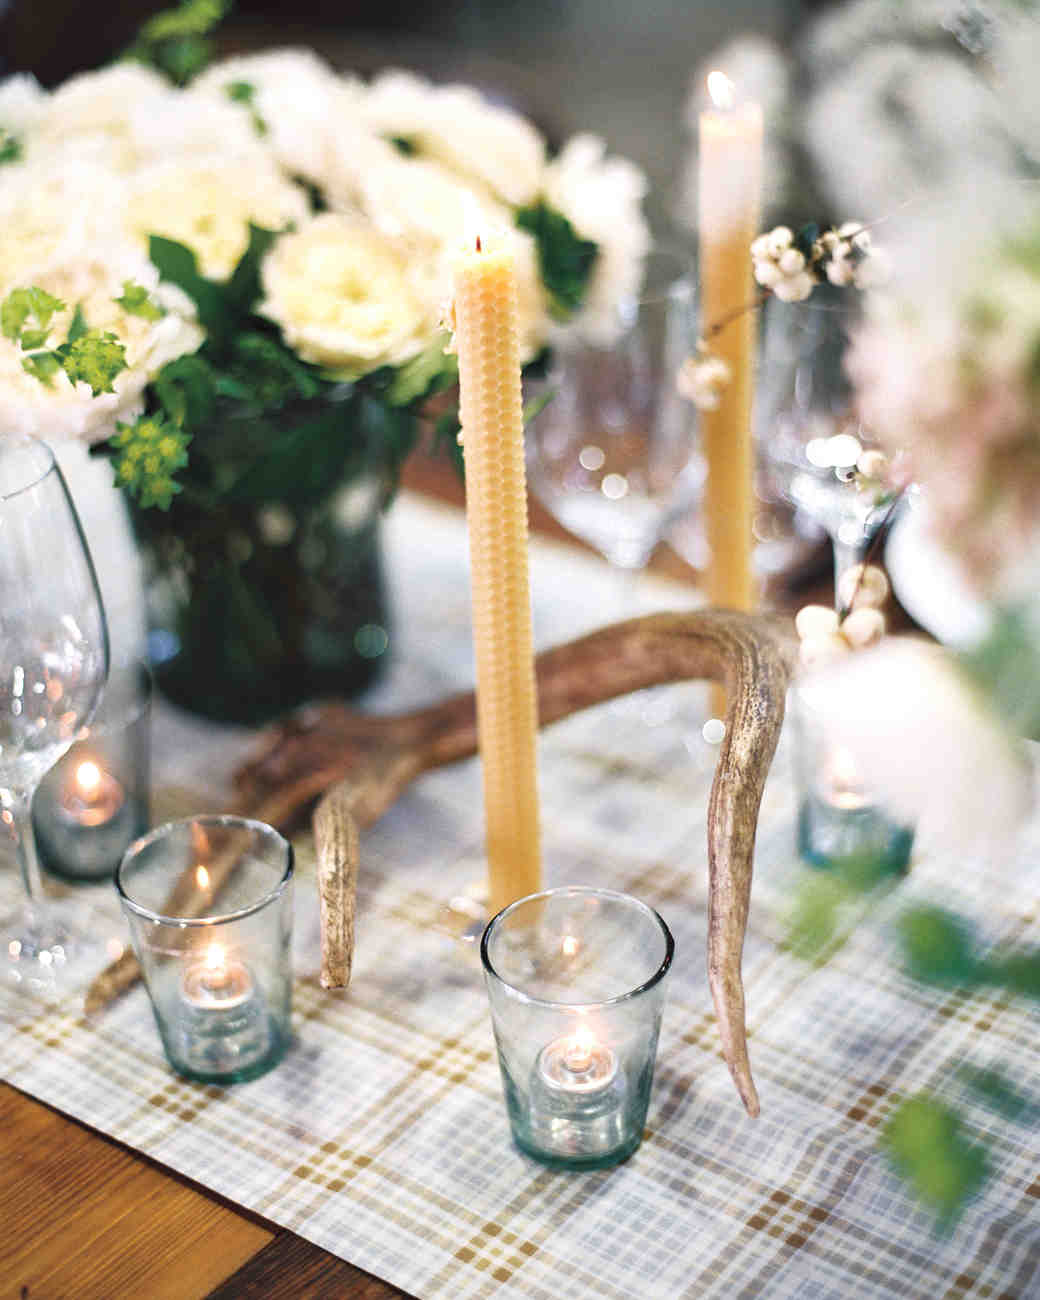 votive-candle-centerpiece-table-runner-008857-r1-016-copy-mwds110846.jpg